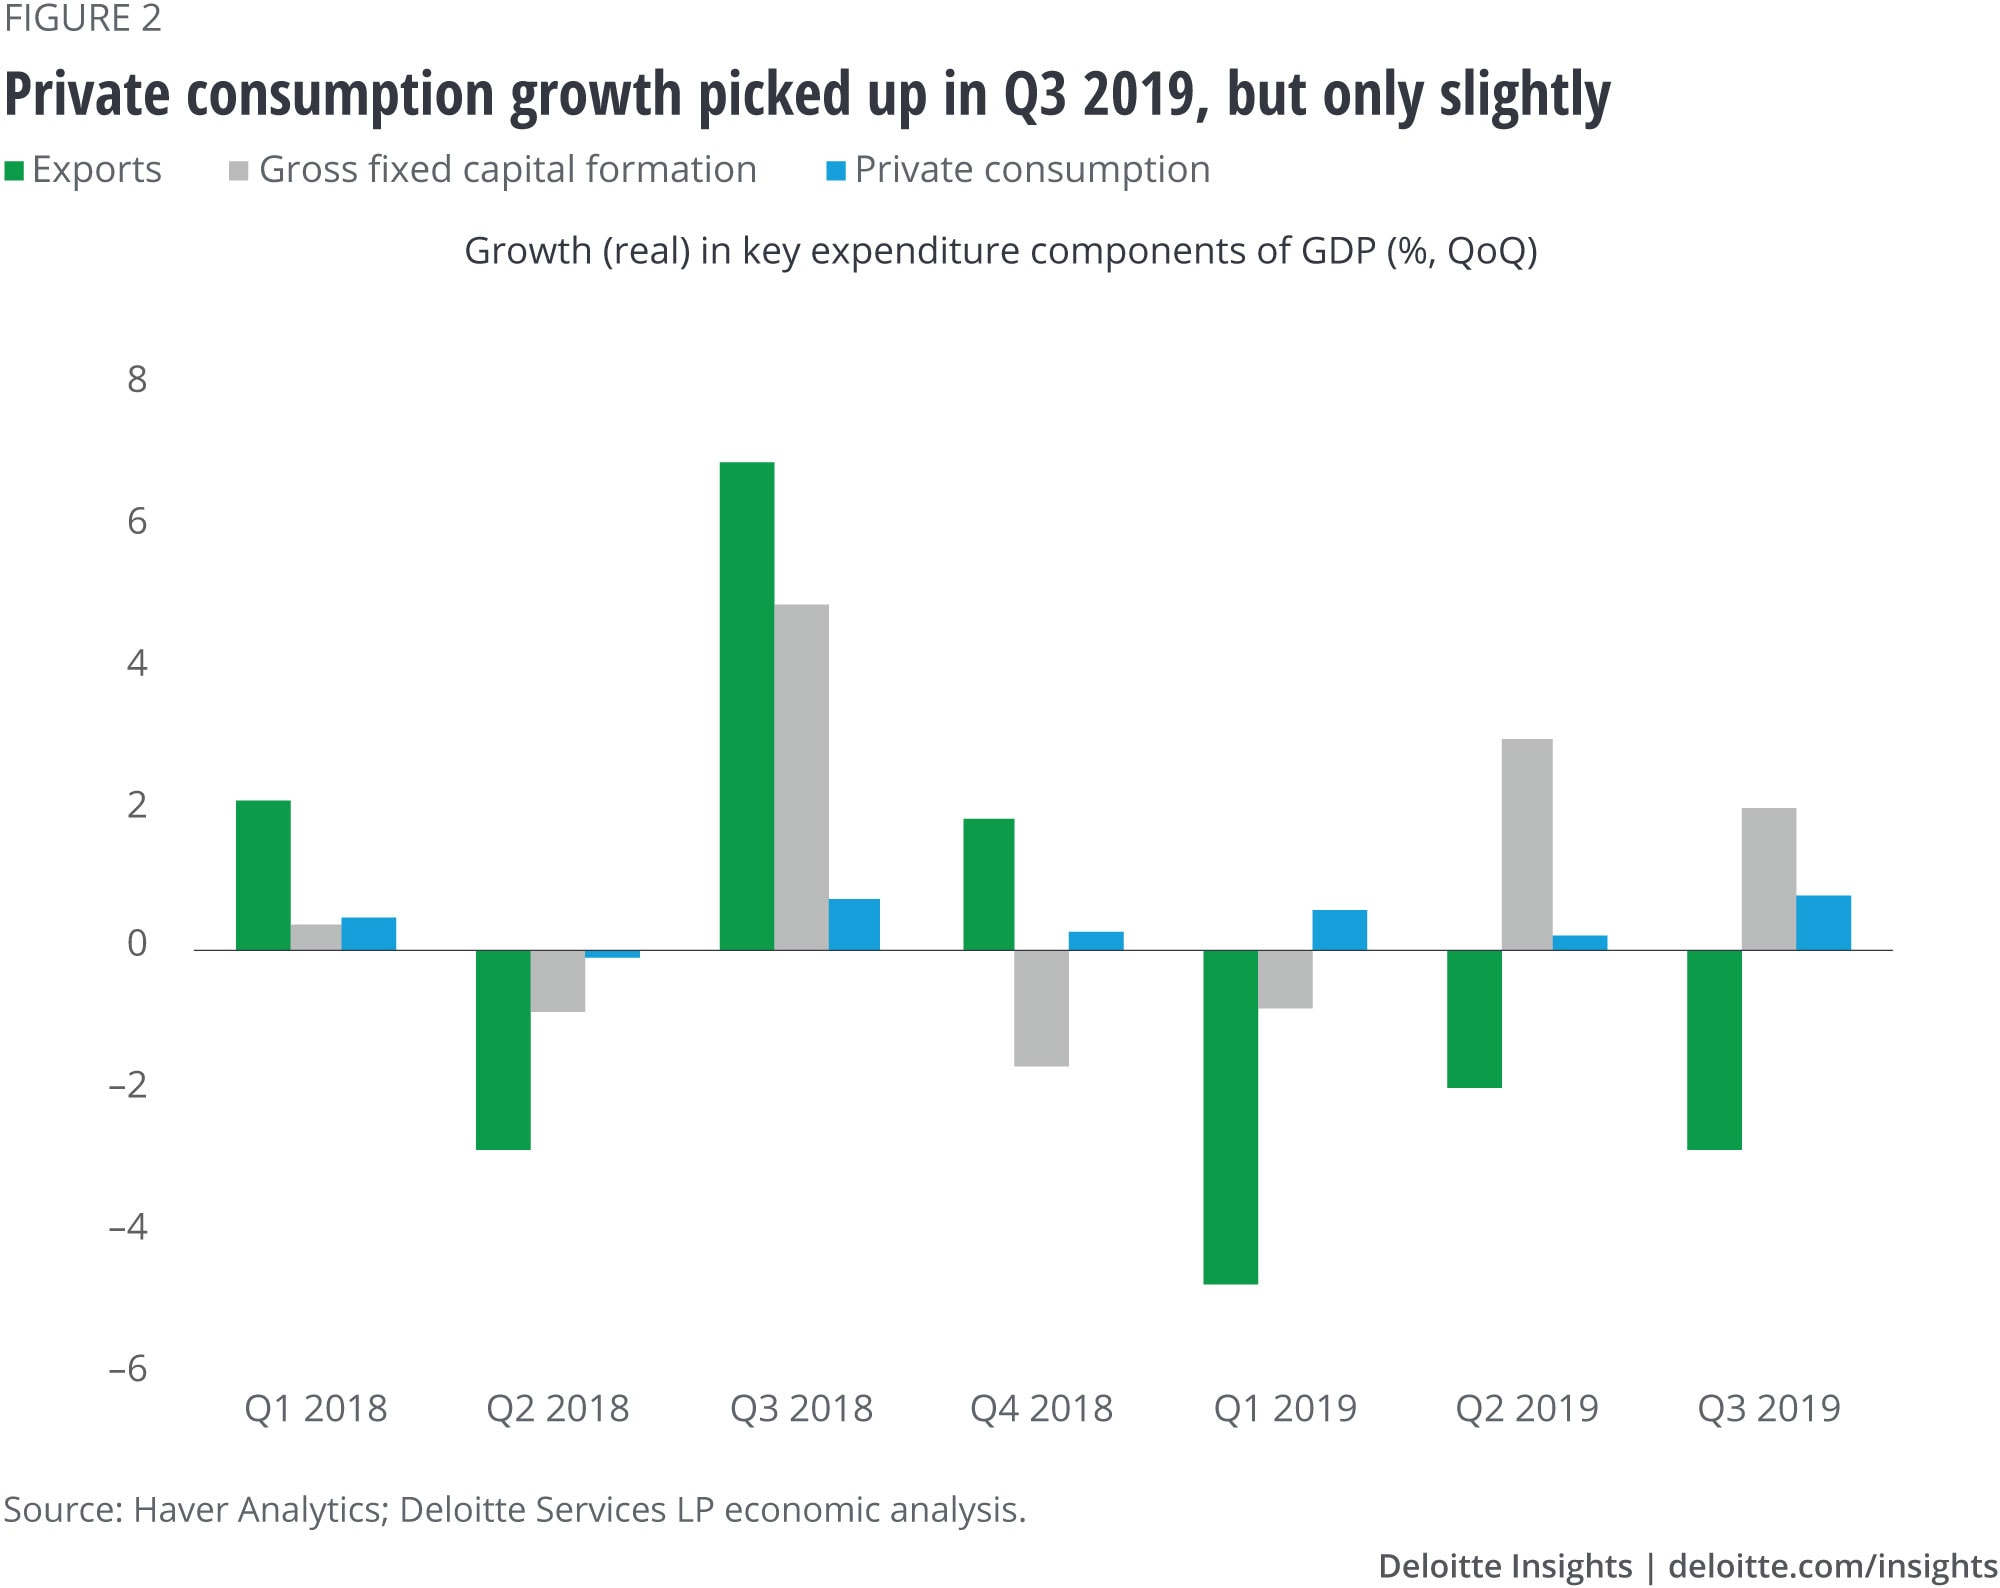 Private consumption growth picked up in Q3 2019, but only slightly